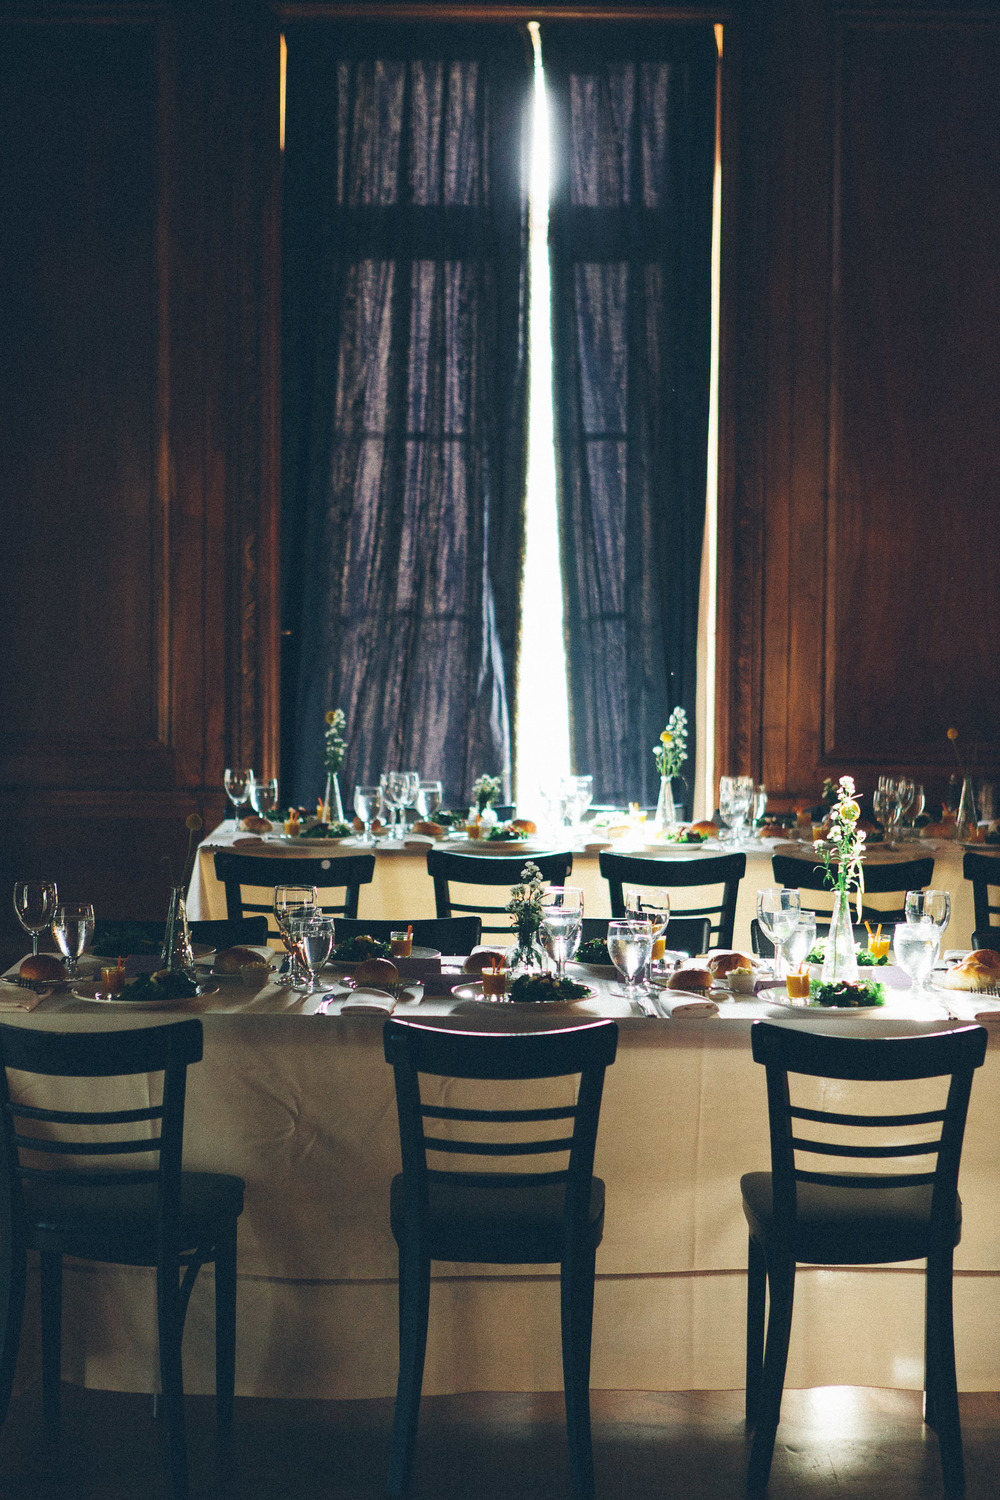 Alder Manor wedding photos. This is a photo of the dinner setup at Alder Manor in Yonkers, NY.